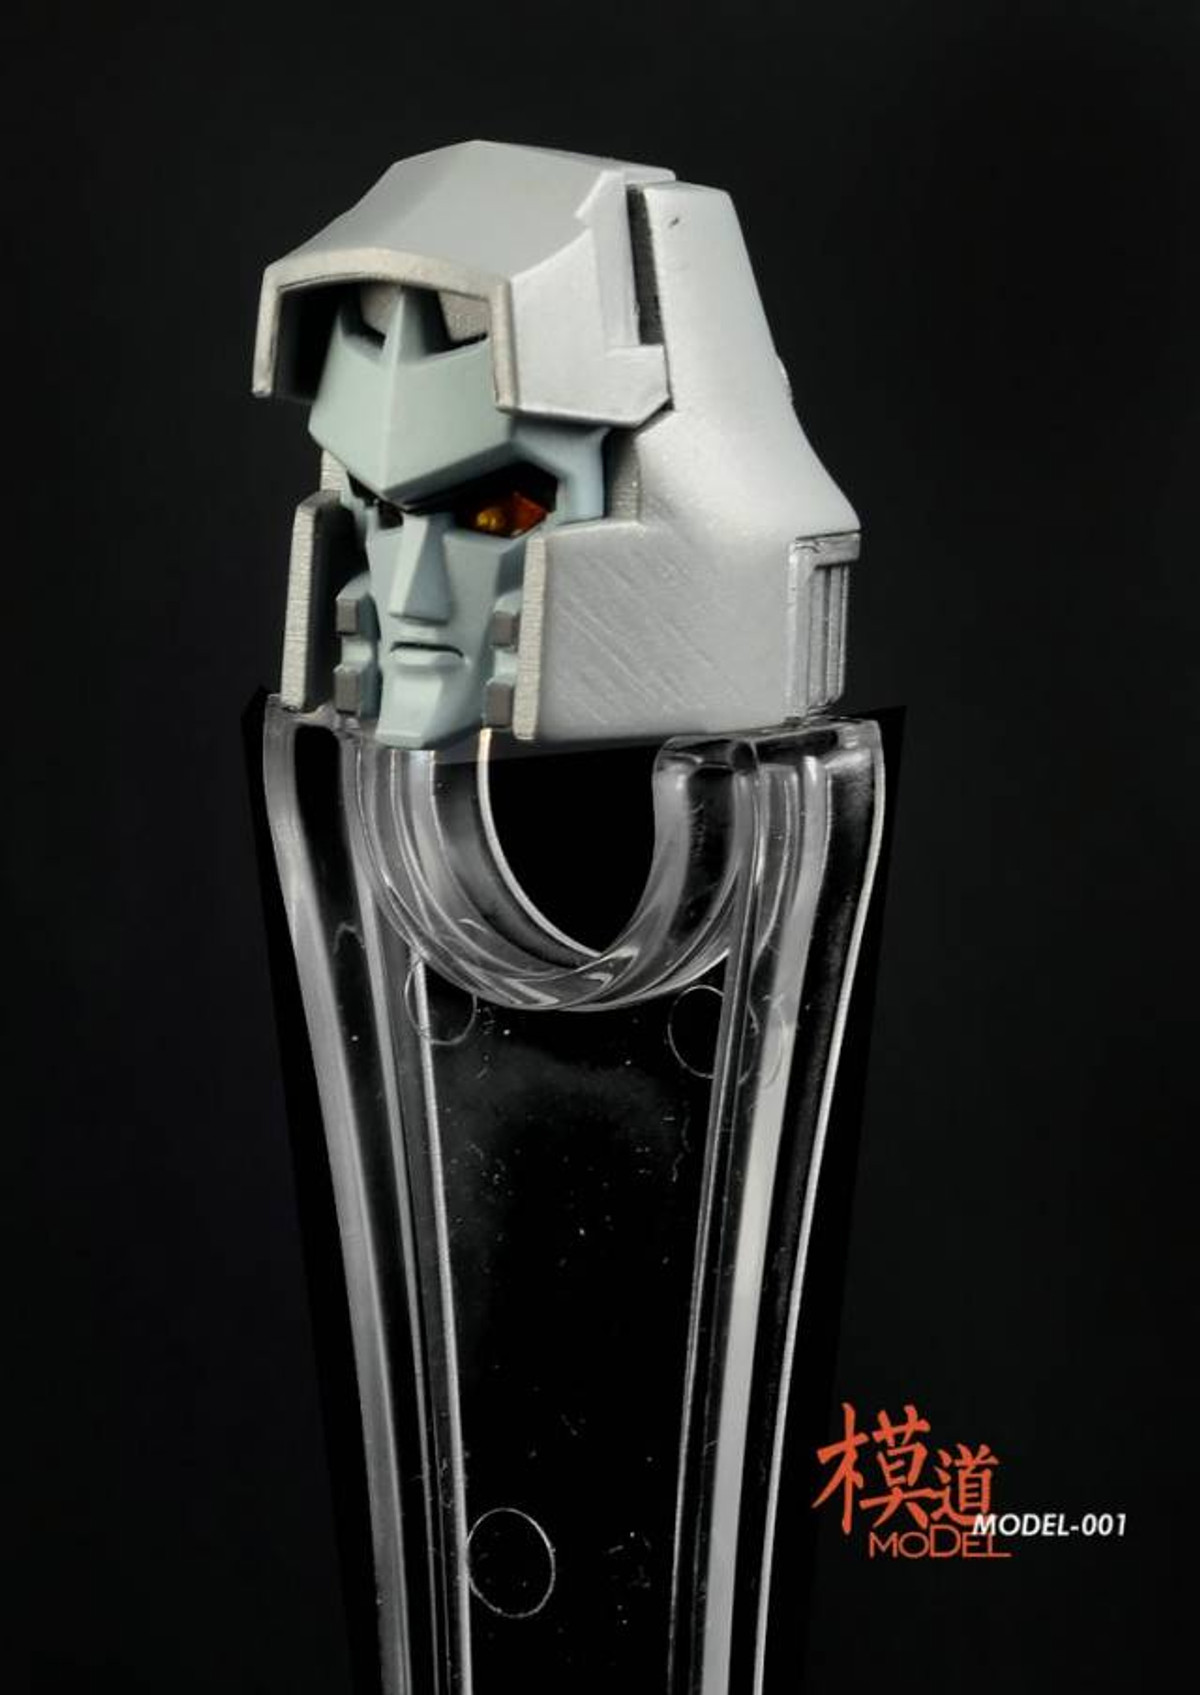 MODEL MODEL-001 MP-36 MEGATRON UPGRADE KIT WITH LIGHT-UP HEAD,Metal Ver.